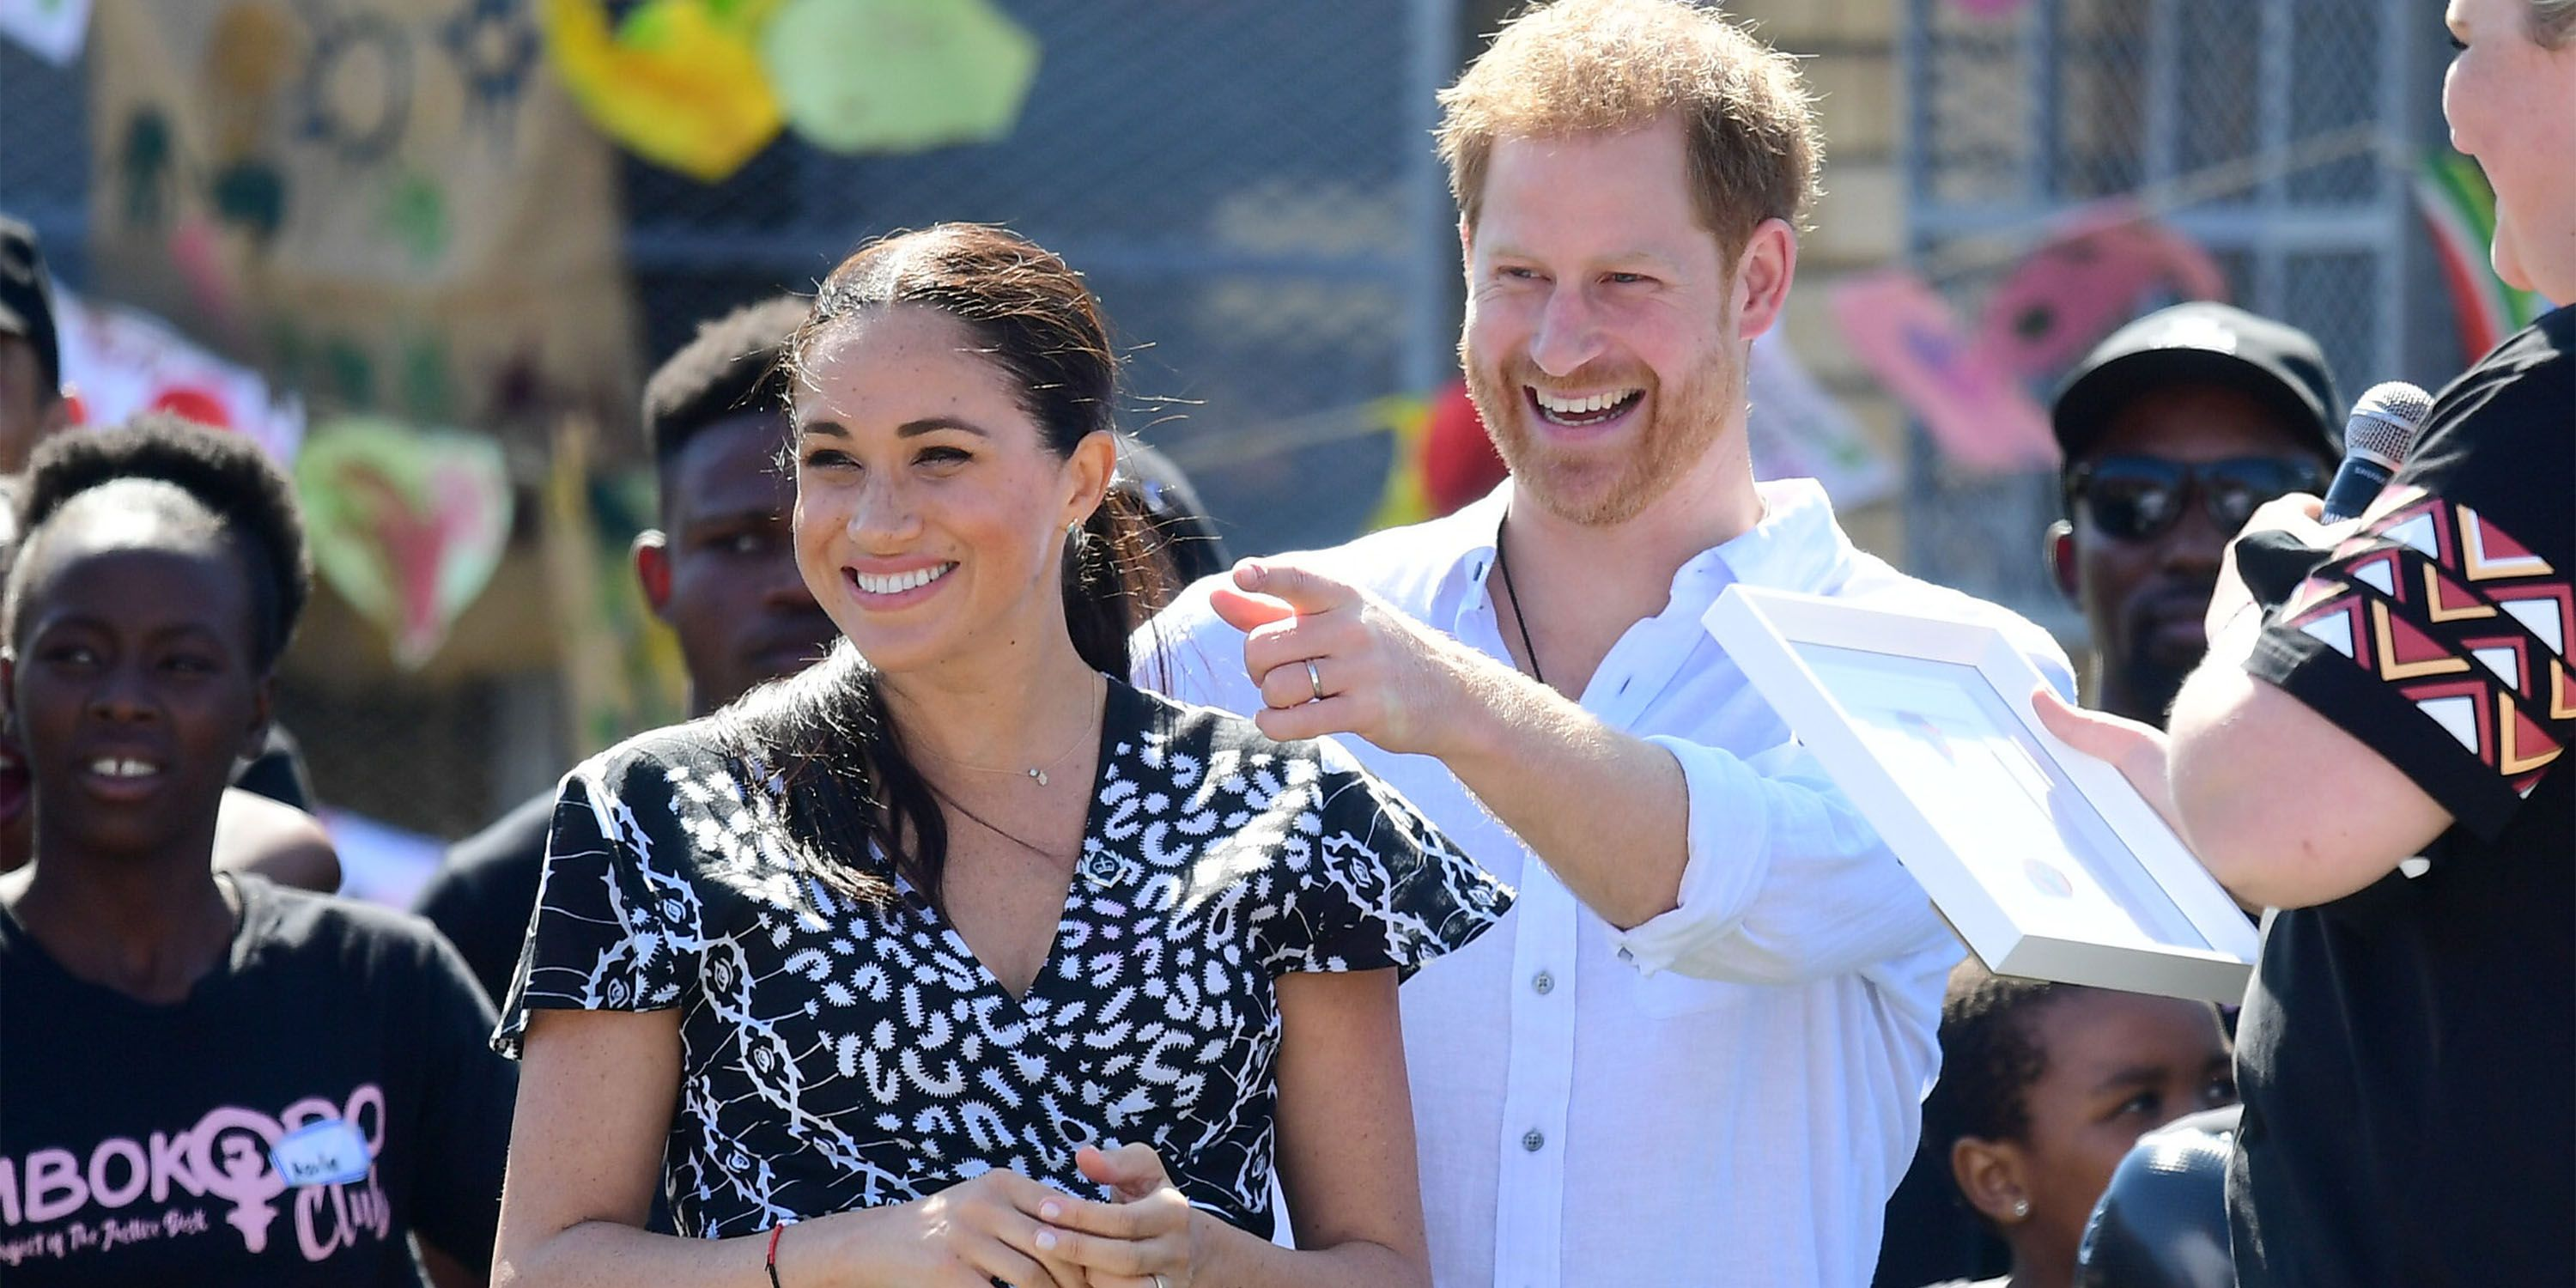 Every Photo from Meghan Markle and Prince Harry's Royal Tour of Southern Africa